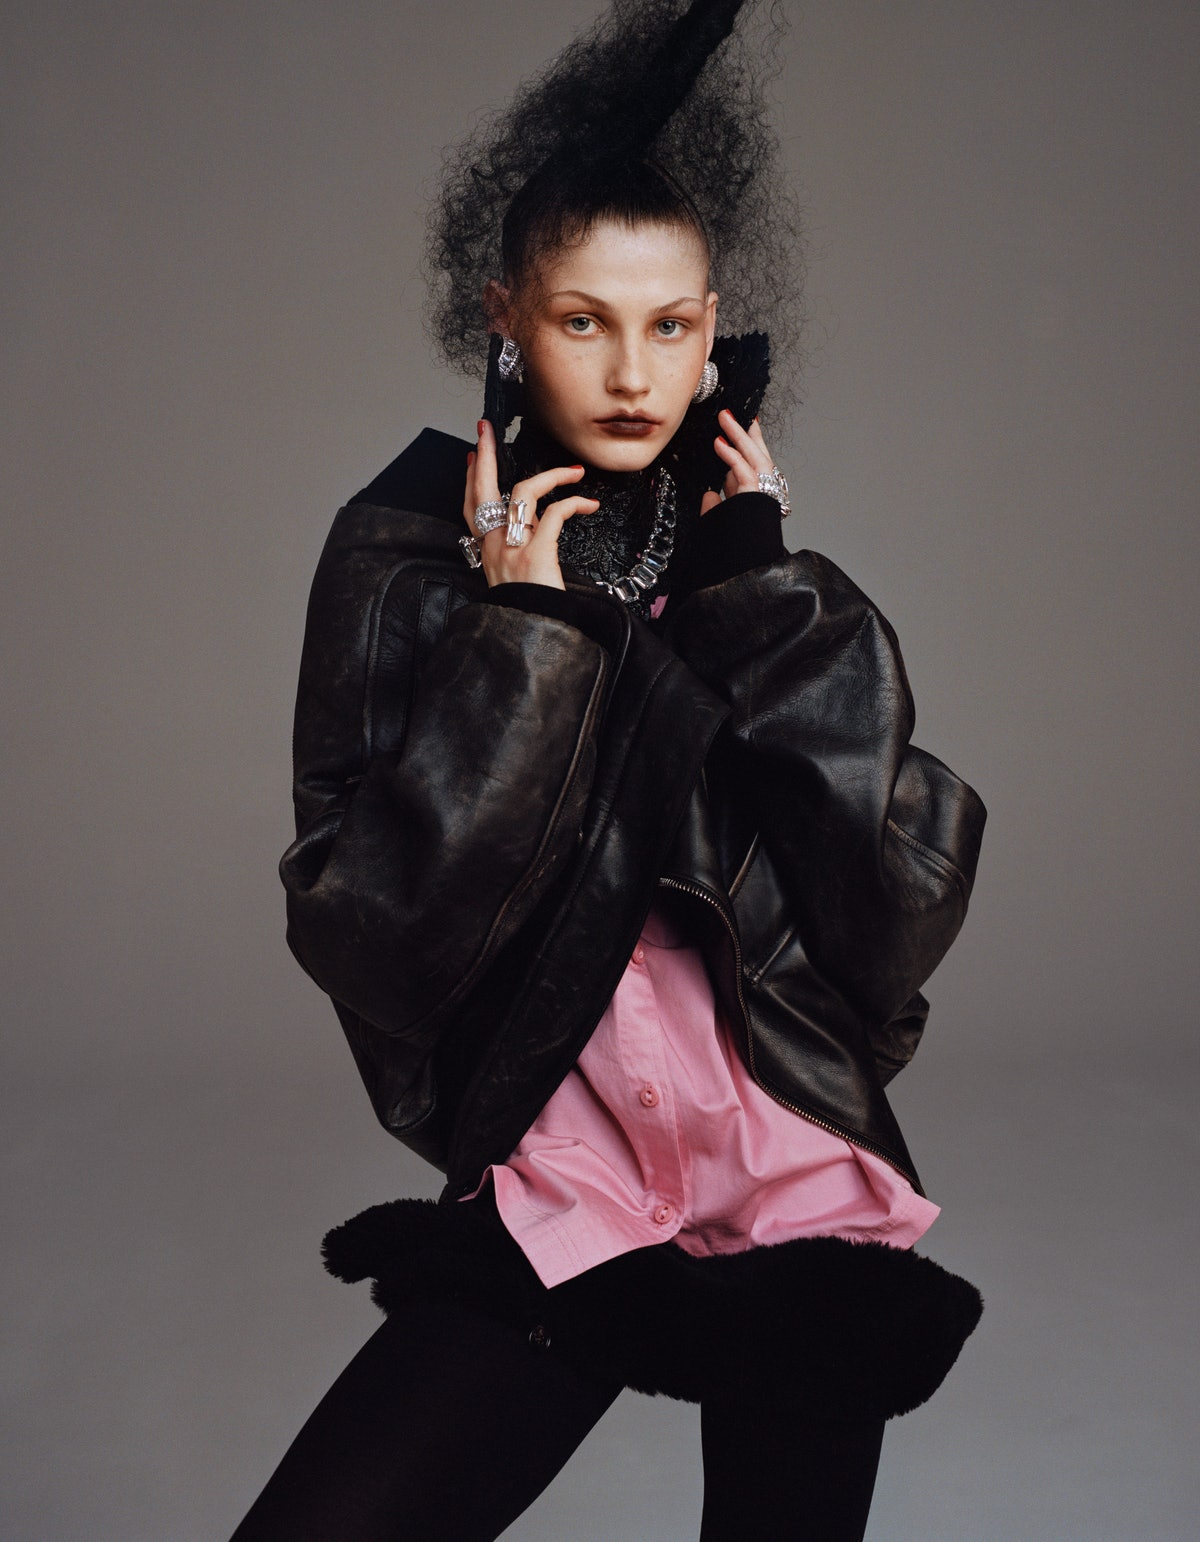 Model Tayla Jade wears a Burberry jacket and shirt; Swarovski earrings, necklace,  and rings; Elissa...